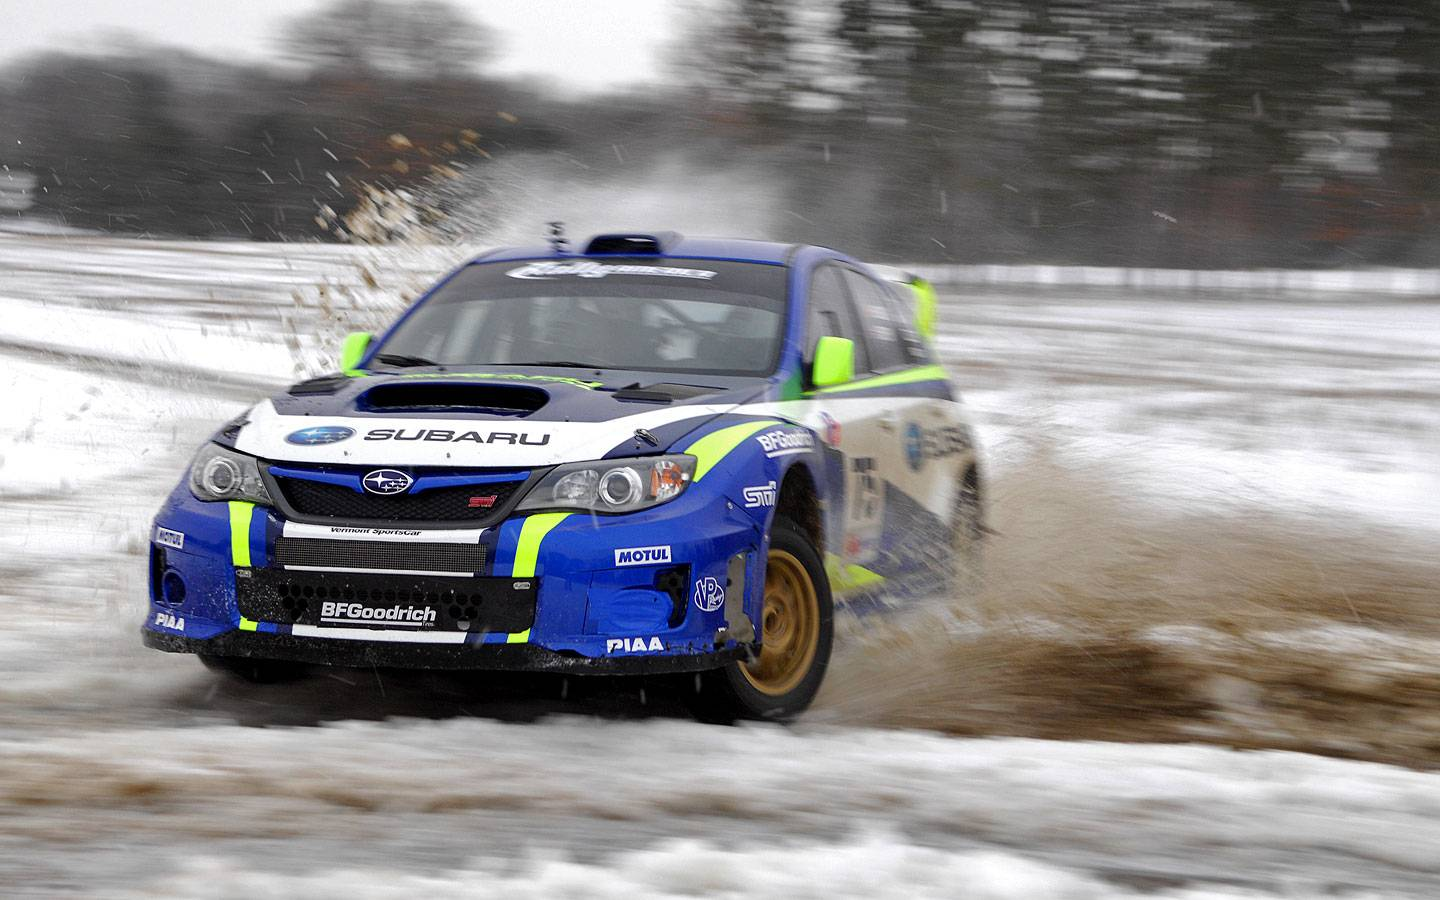 Subaru Wrc http://rally-daddy.com/2012/01/27/2012-subaru-rally-team-usa-snodrift-rally-testing/